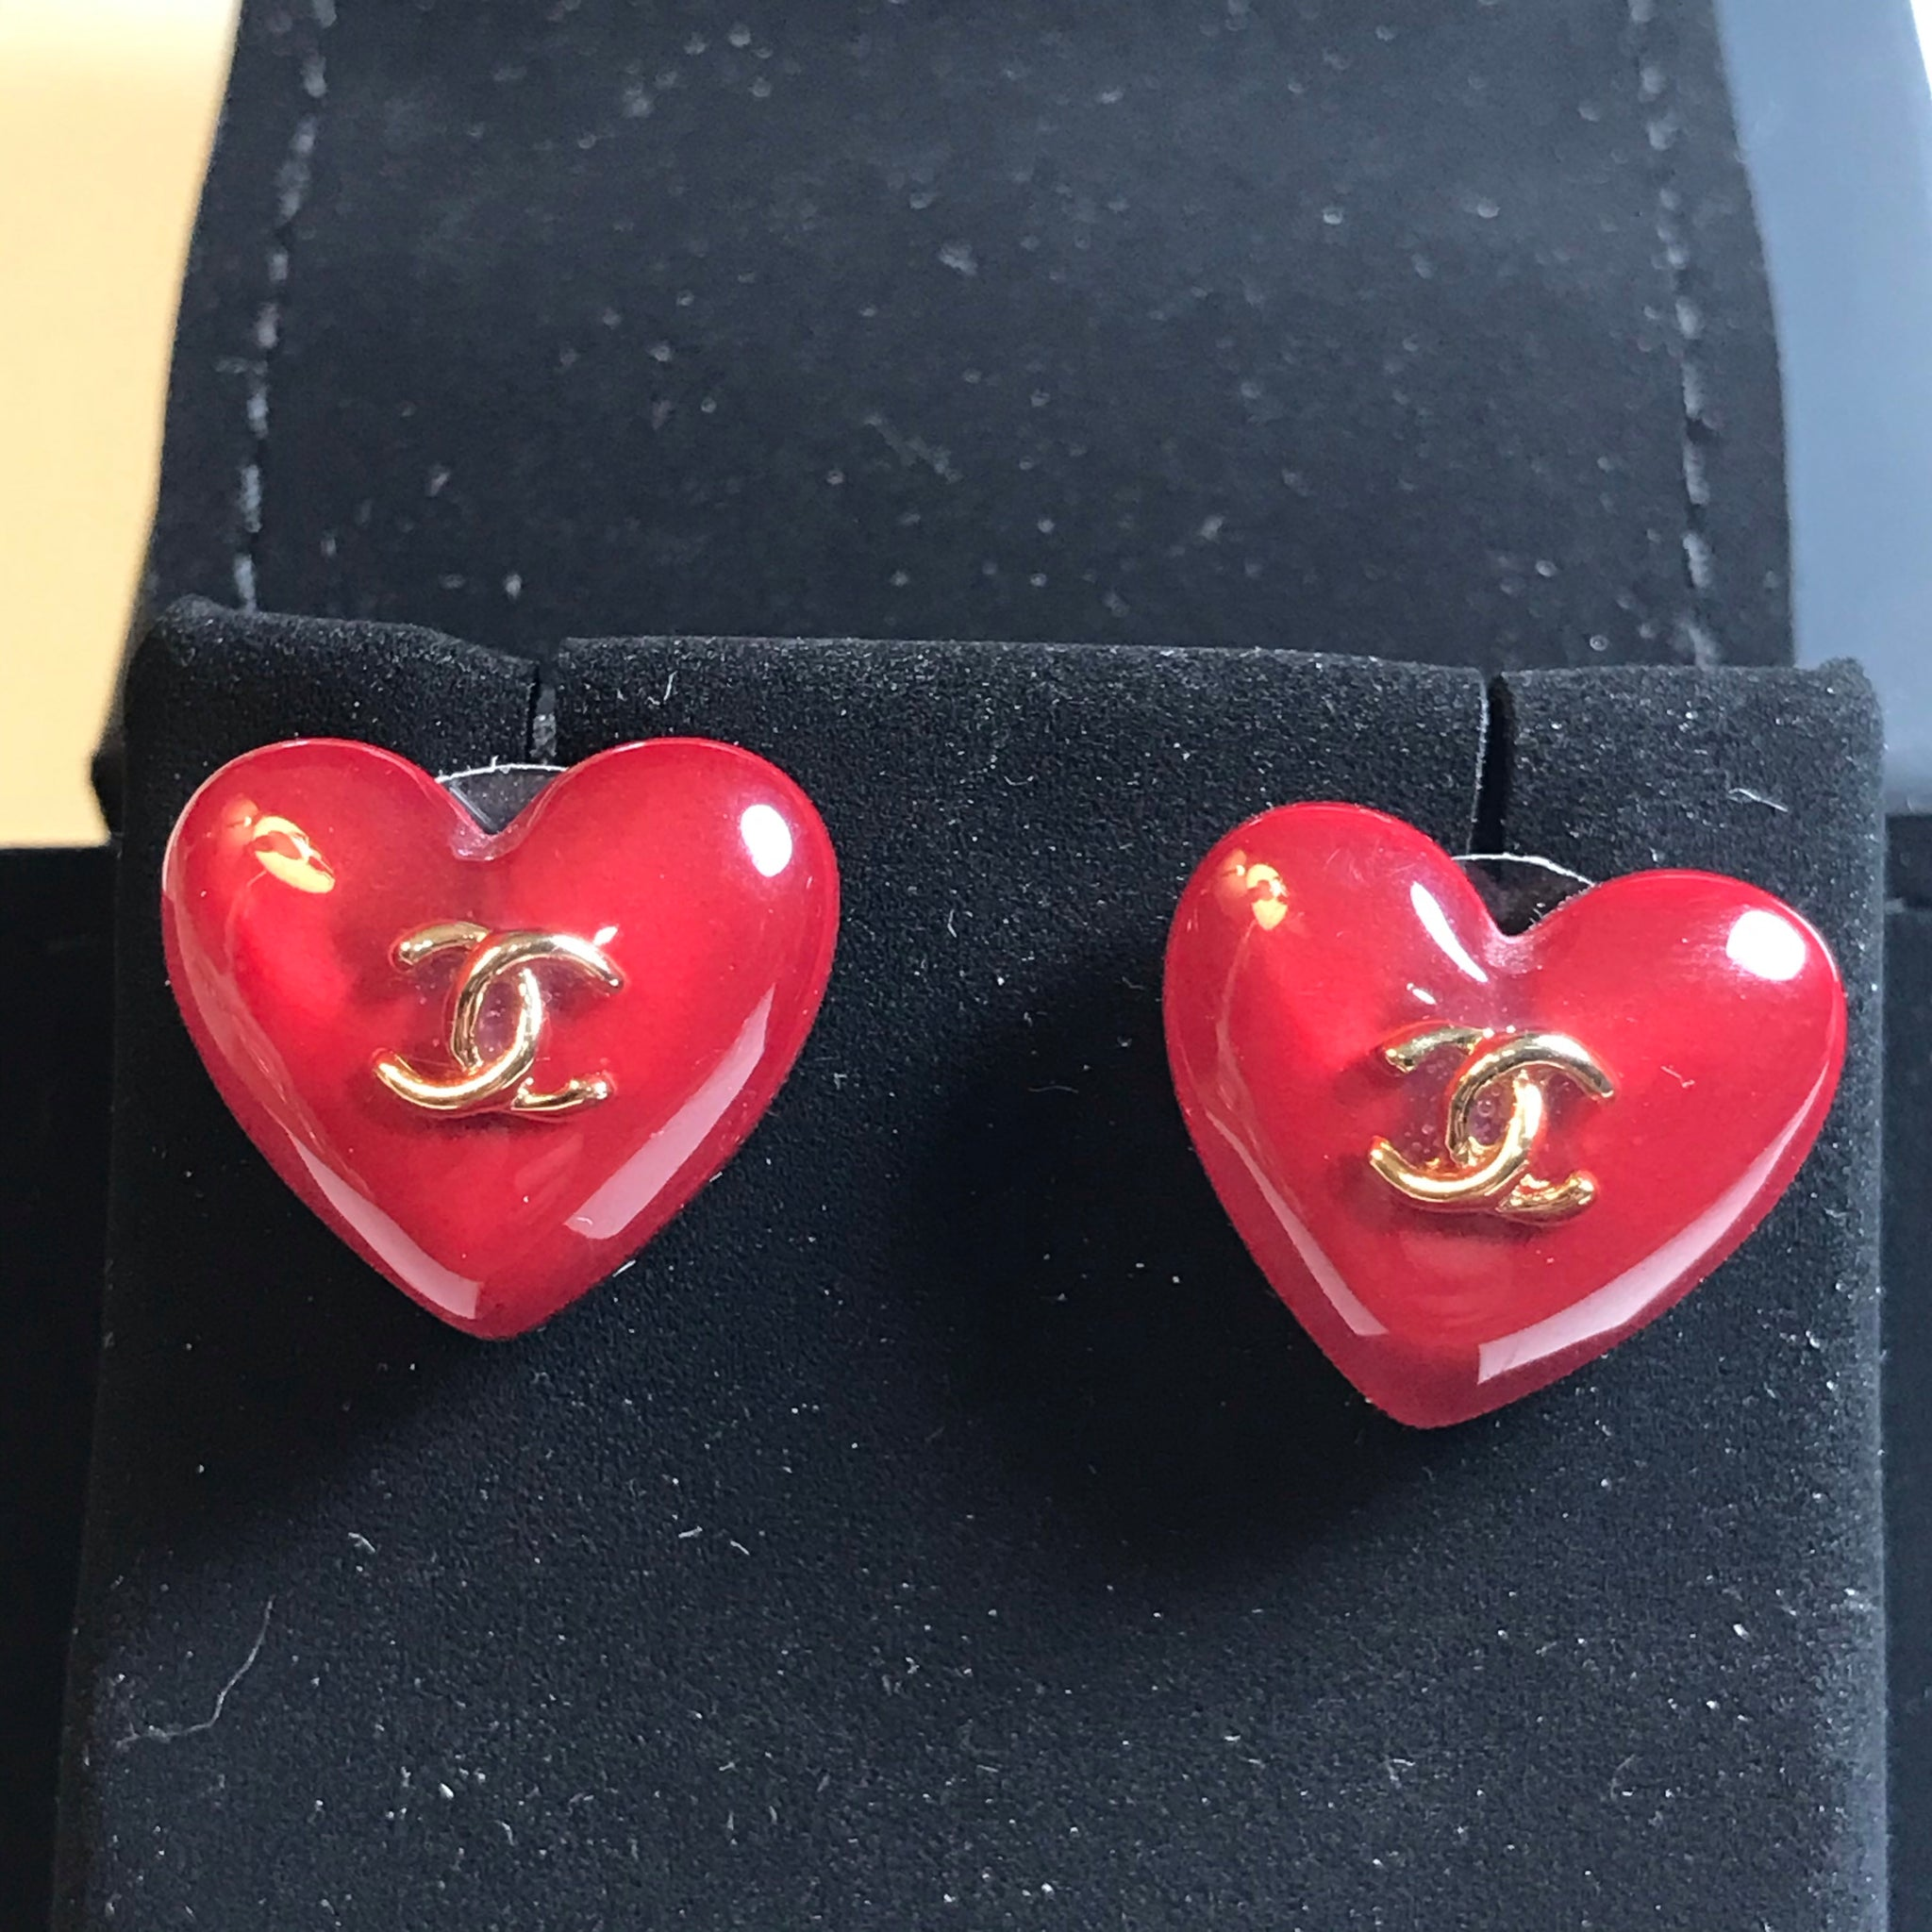 Chanel deep red heart shape earring studs